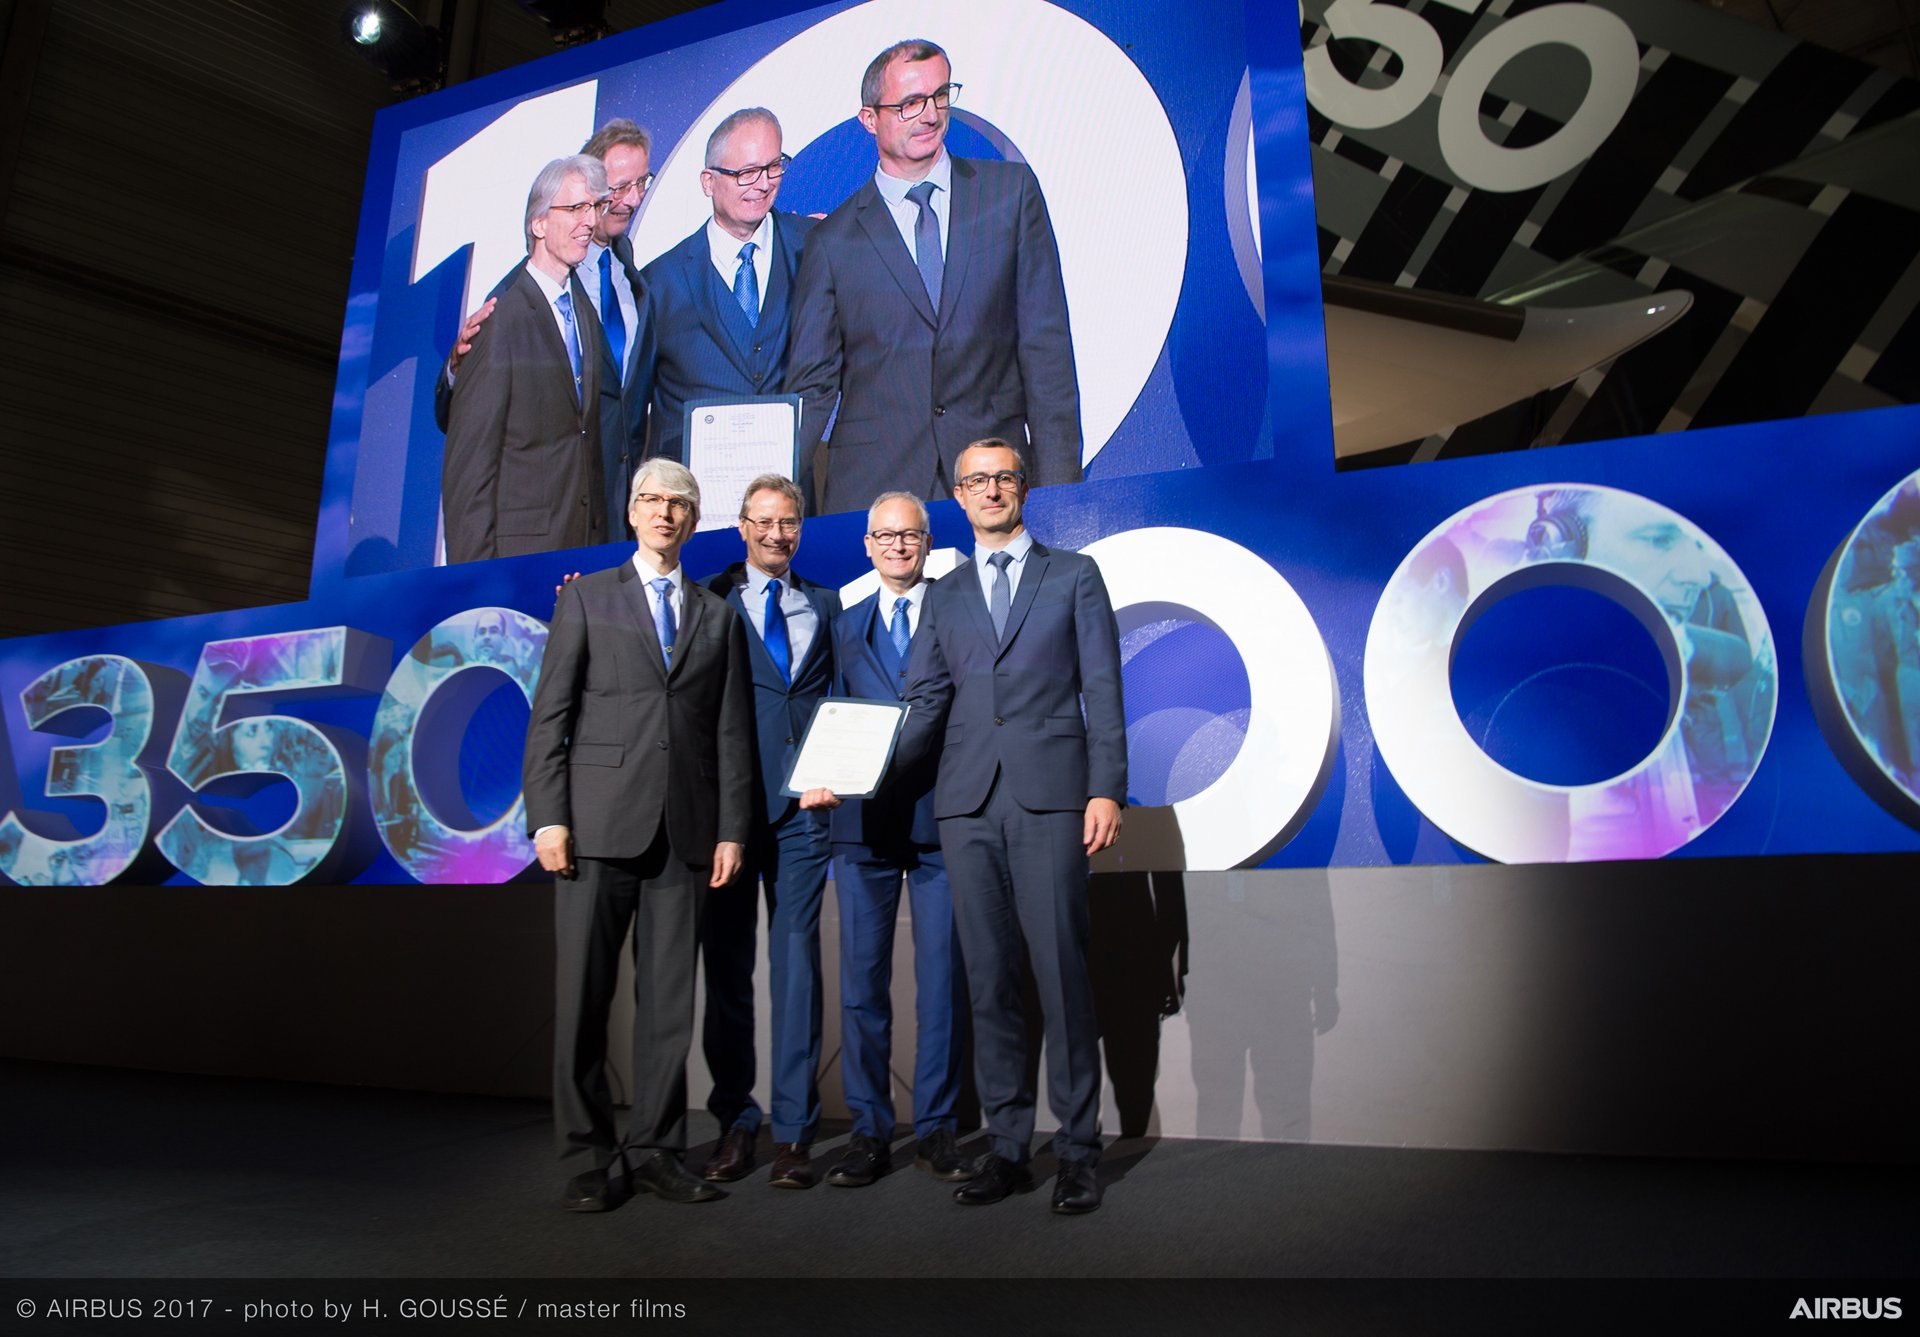 A350-1000 Type certification ceremony